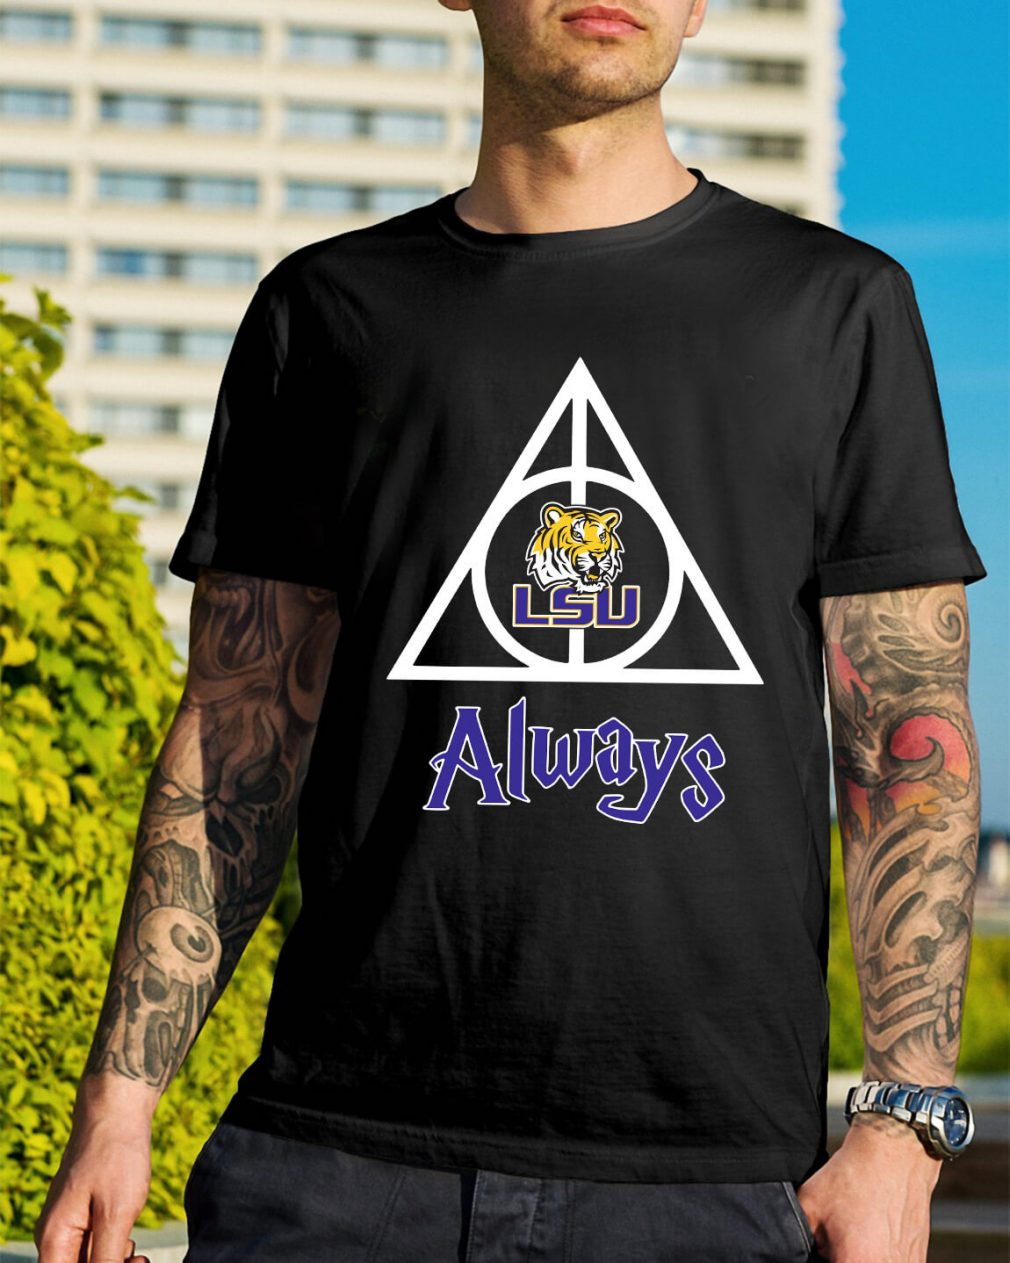 LSU Tigers Deathly Hallows always Harry Potter shirt